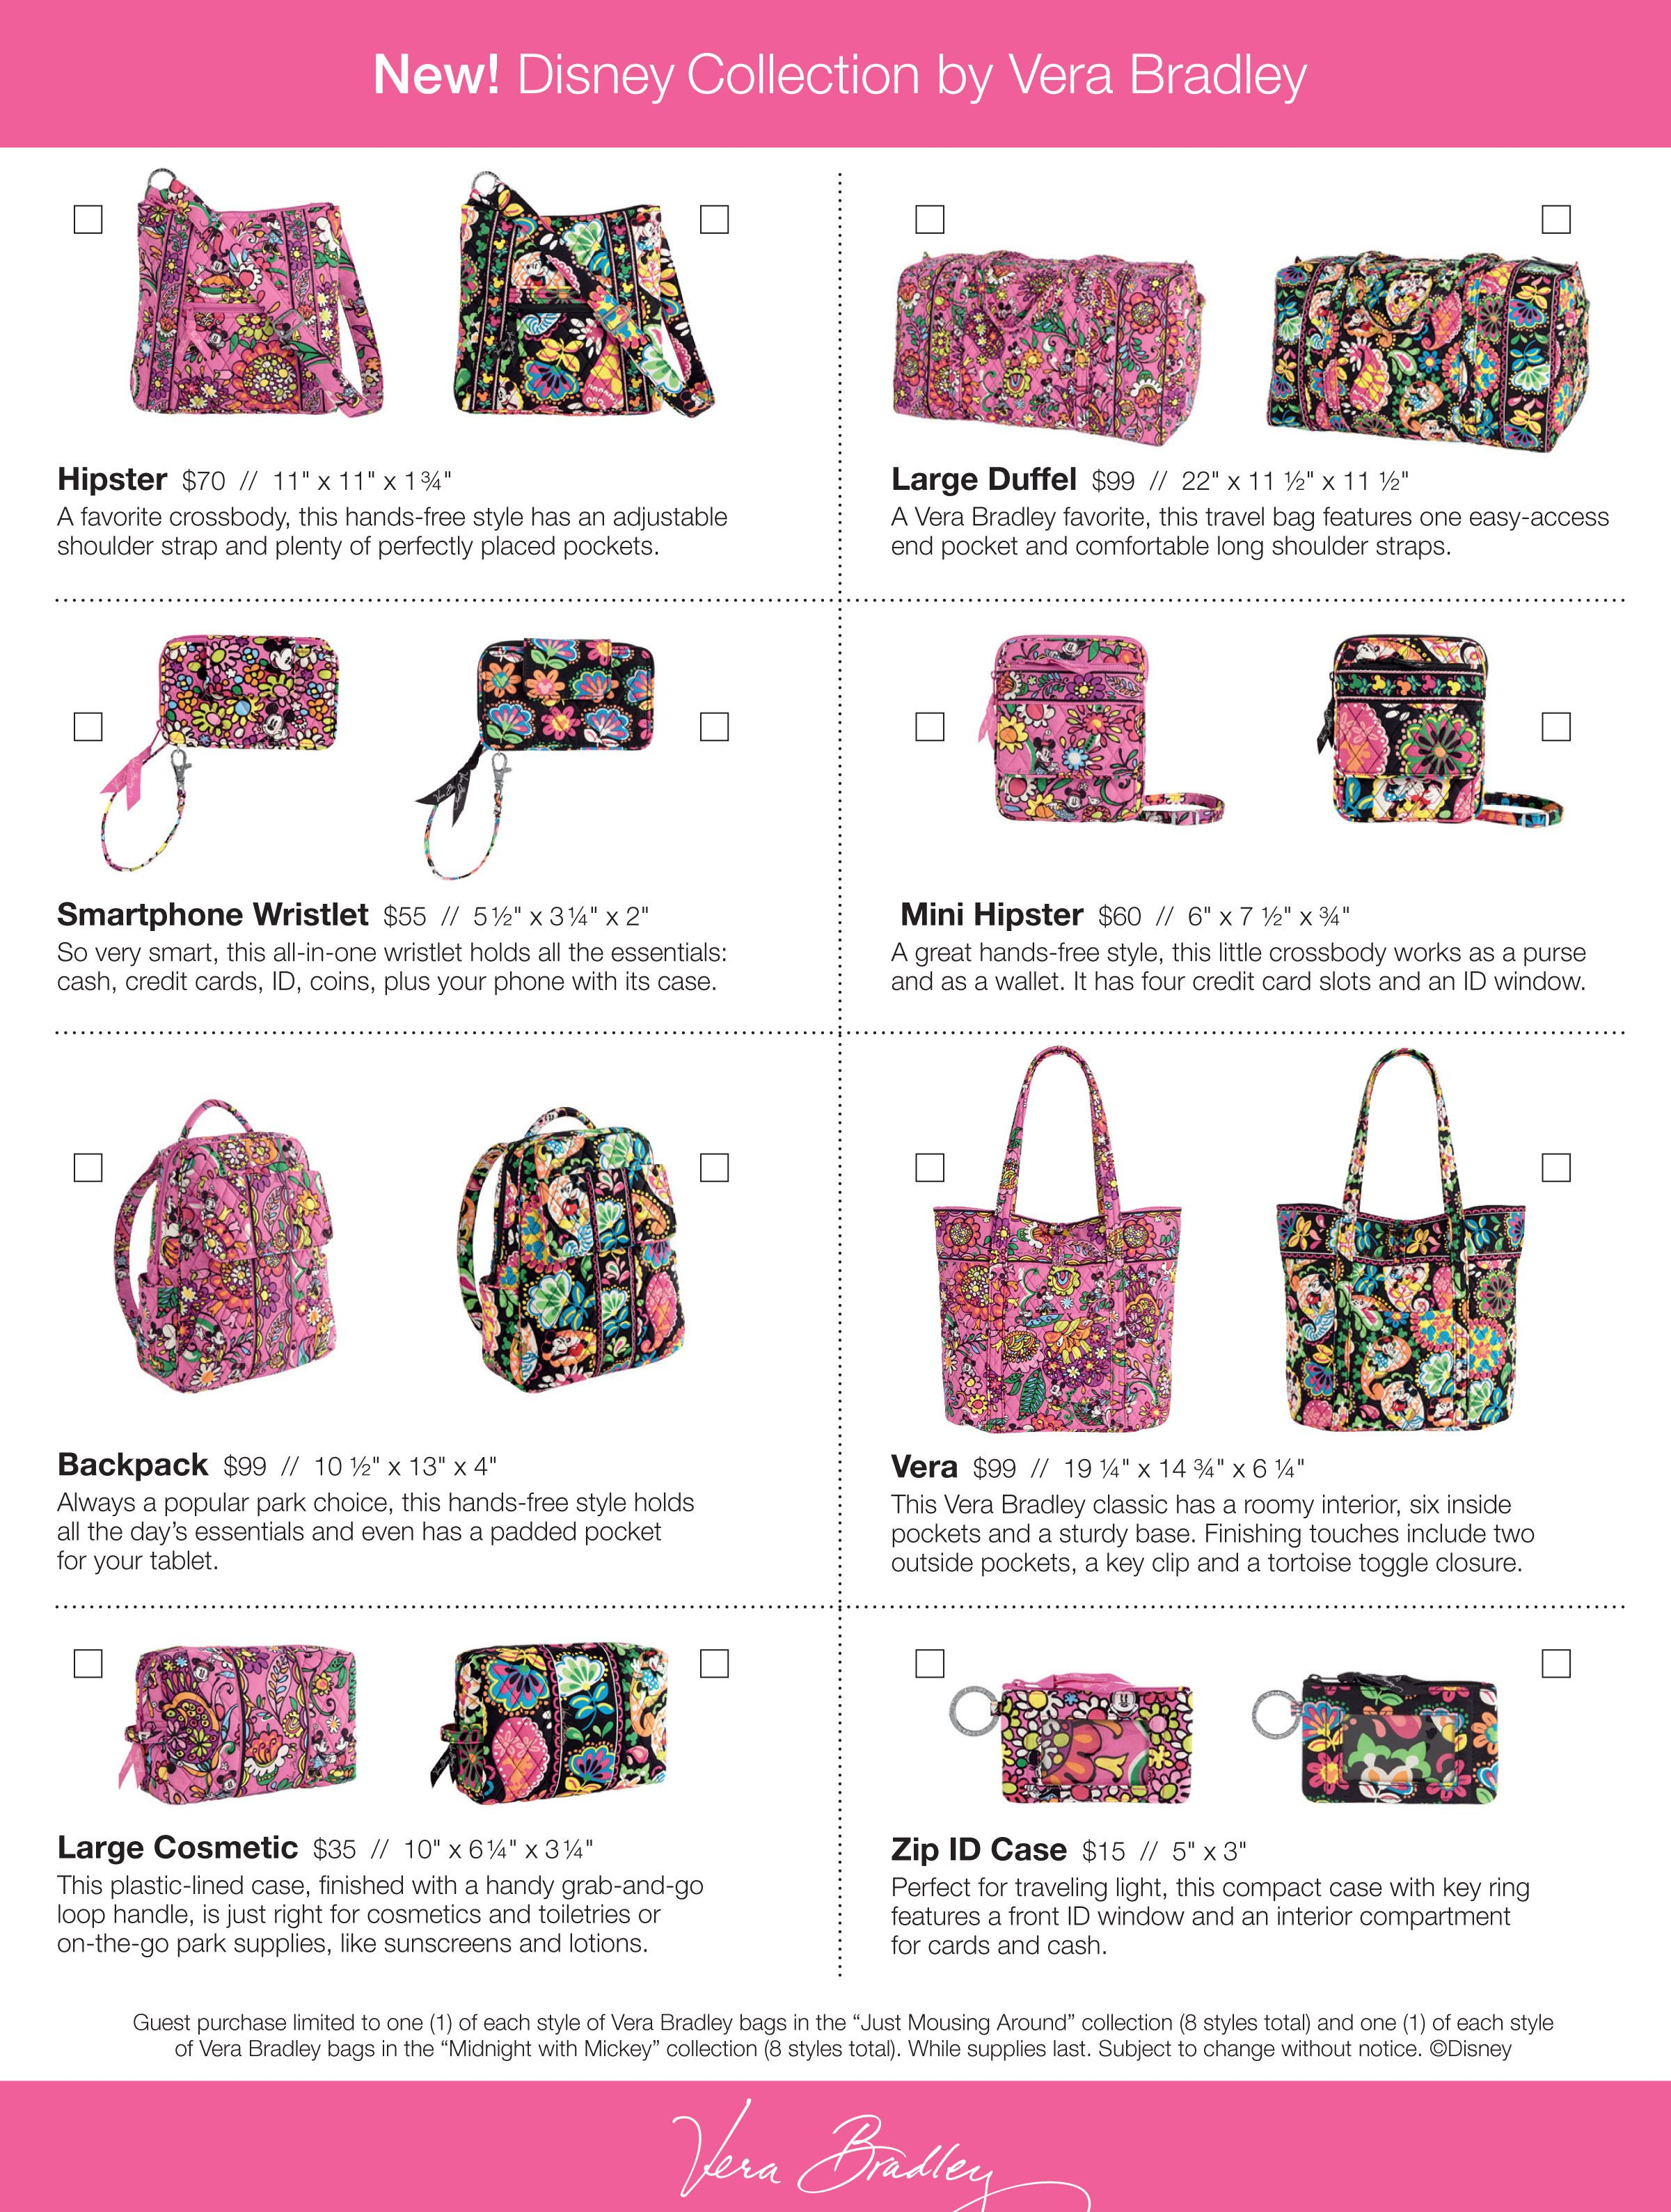 8e78fd456f Disney Collection by Vera Bradley Release Party by Contributing Author  Lucinda Adania - The Adult Side of Disney